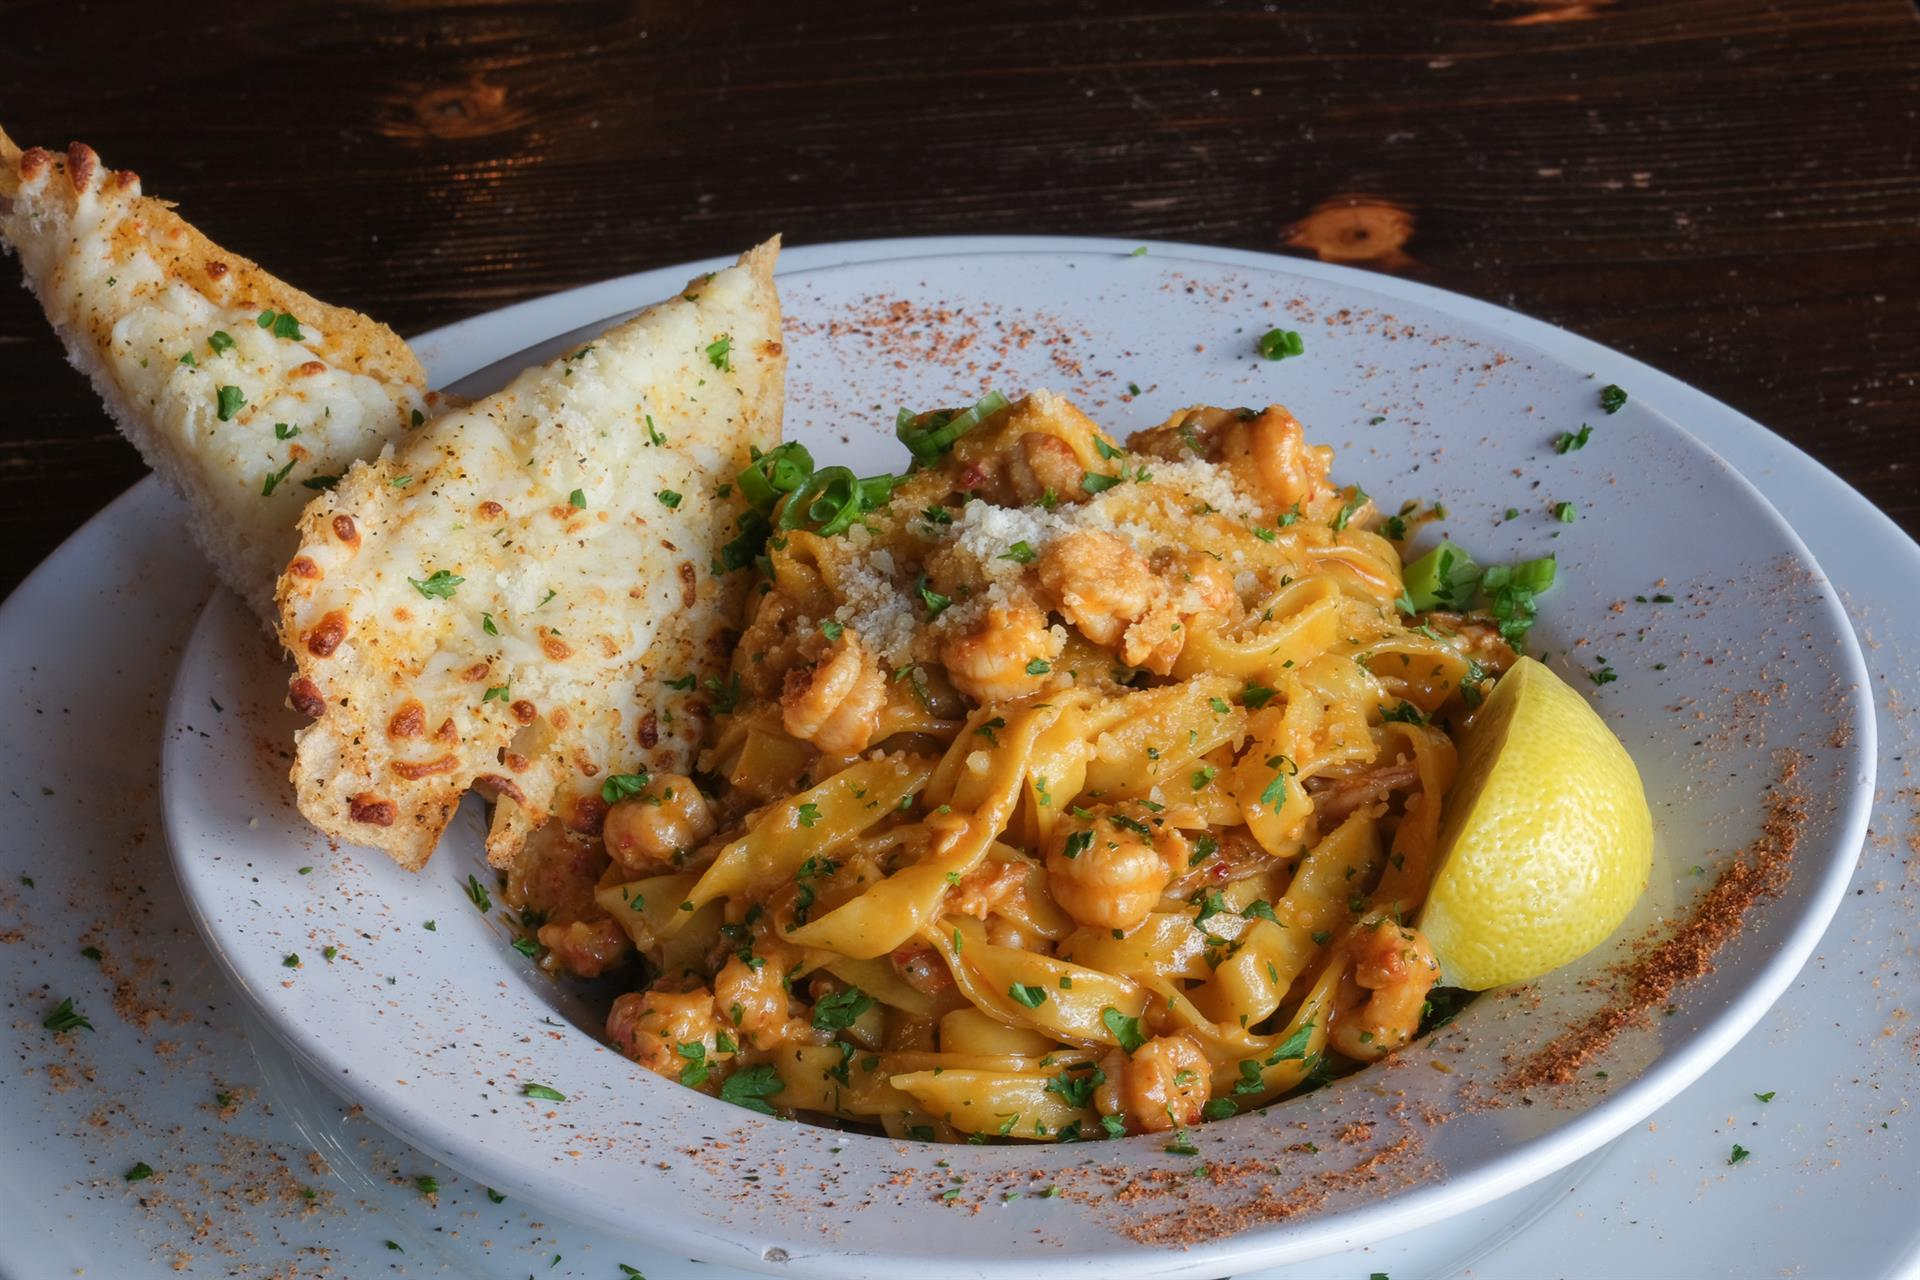 Crawfish Pasta Monica. Wild caught Louisiana crawfish tails sautéed with Creole seasonings & white wine in a light cream sauce over fresh fettuccine with toasted cheese bread